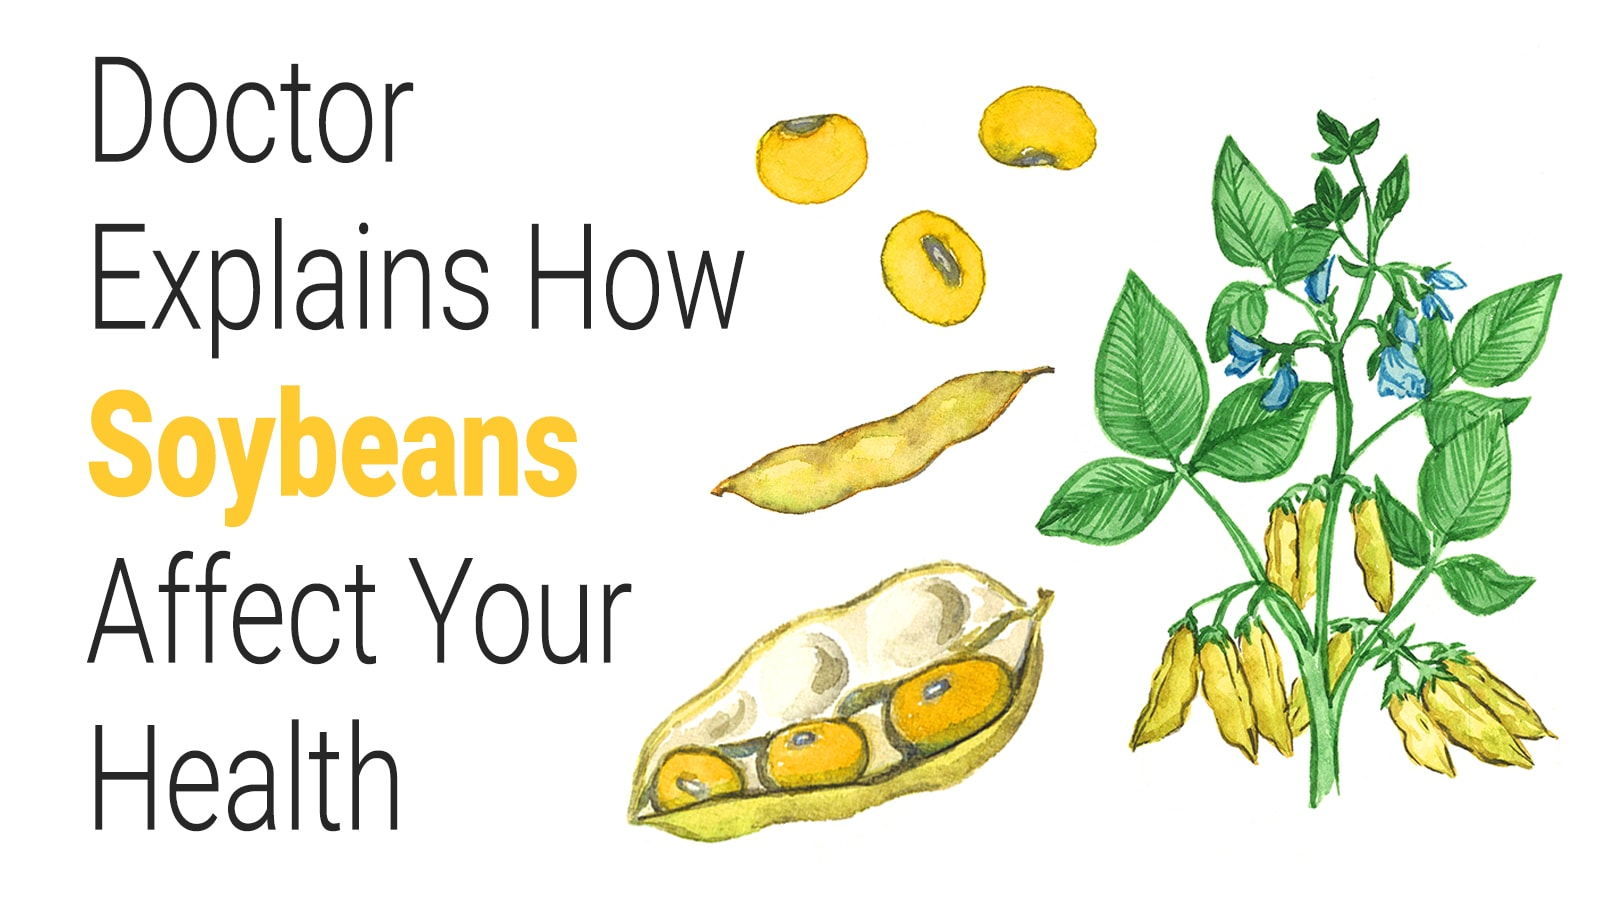 Doctor Explains How Soybeans Affect Your Health